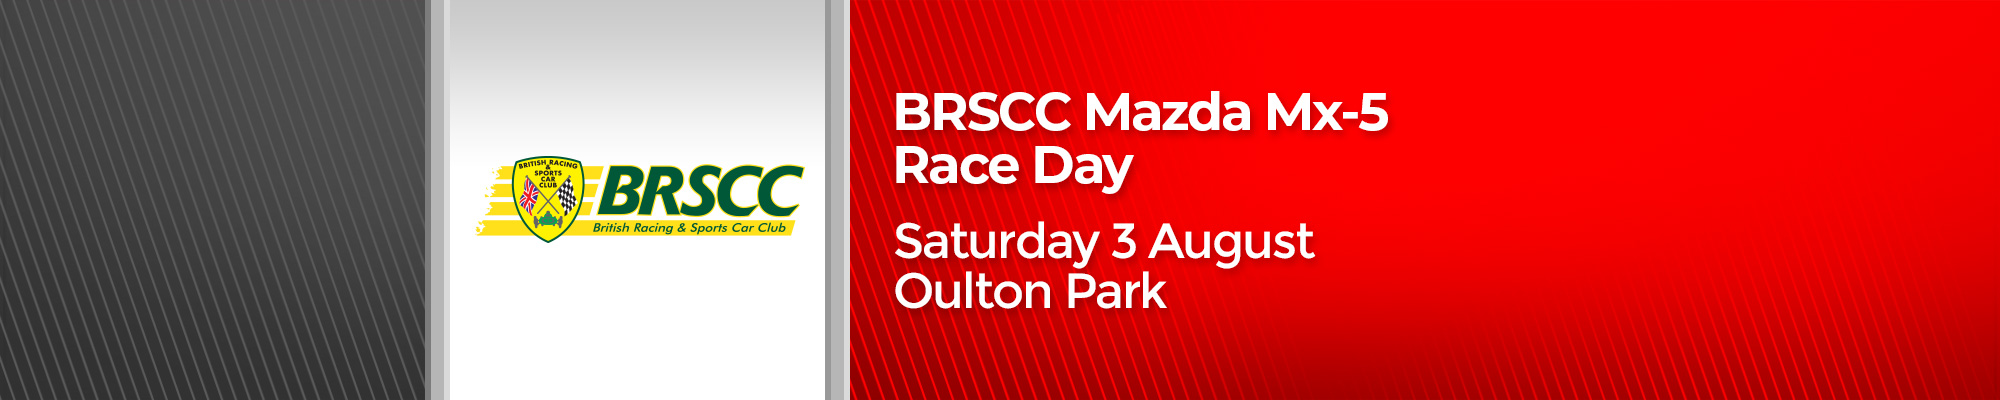 BRSCC Mazda MX-5 Race Day